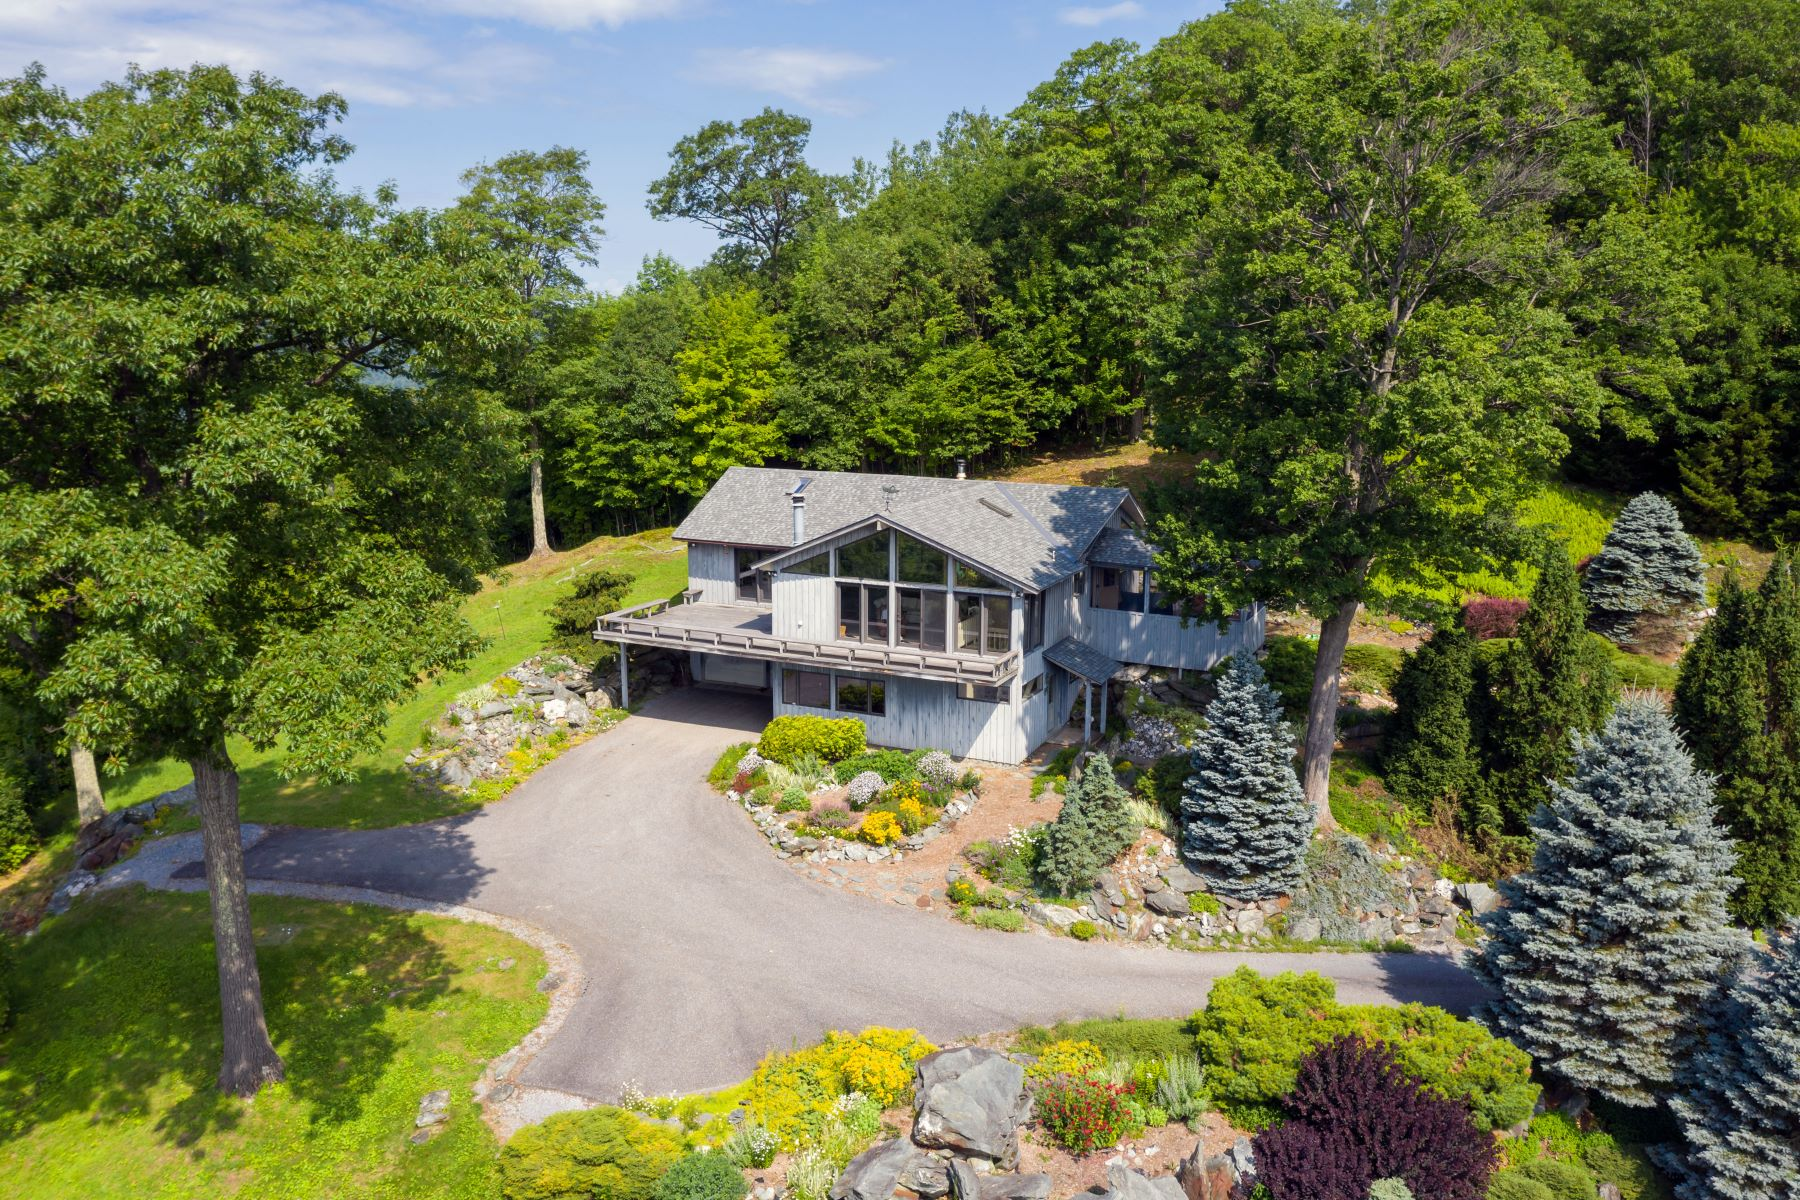 Single Family Homes for Sale at Treetop Oasis 593 Upper Meehan Rd Bristol, Vermont 05443 United States